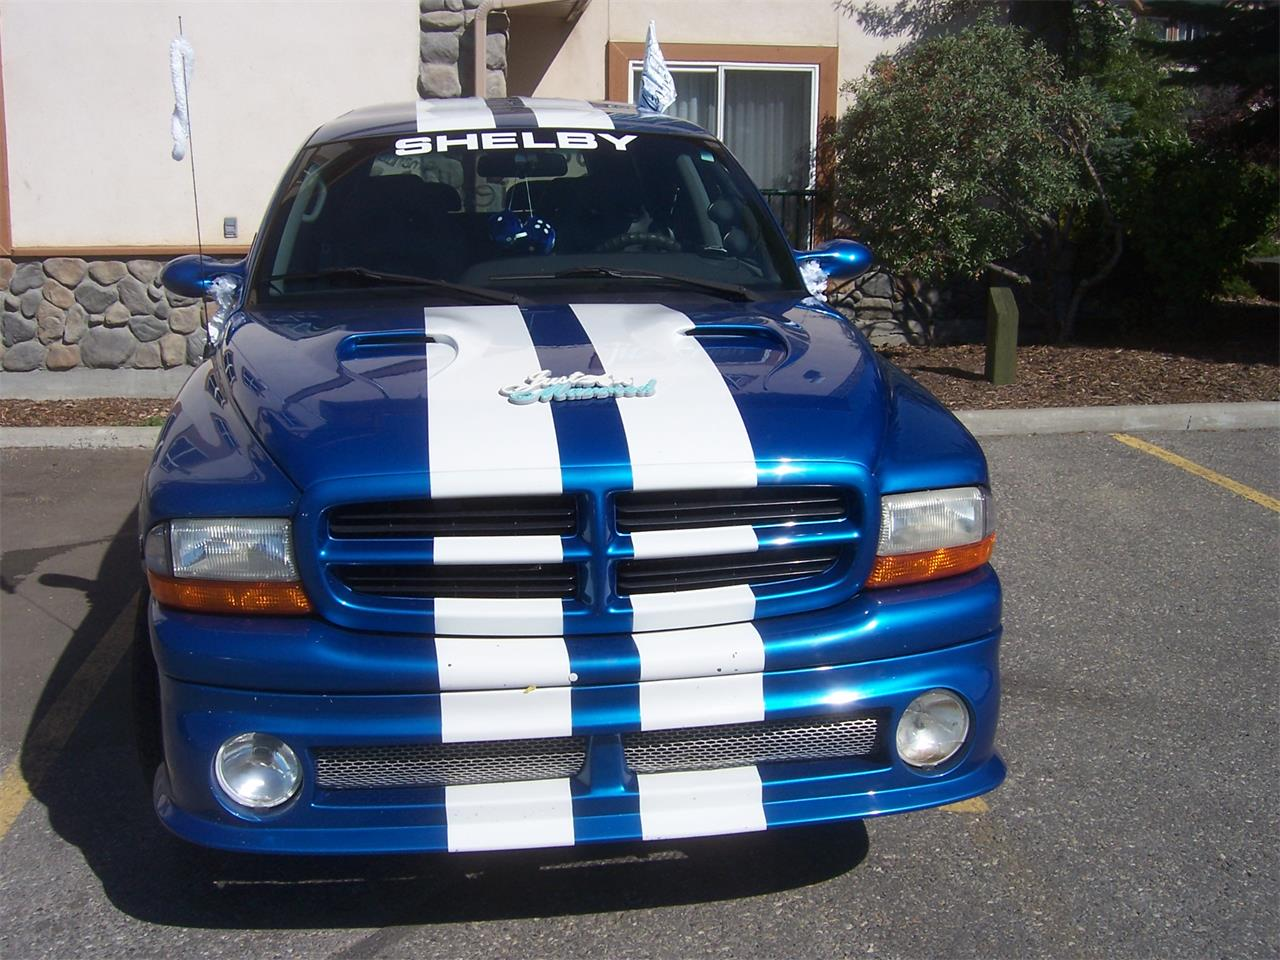 Large Picture of '99 Shelby Durango Shelby SP360 located in Alberta - $20,000.00 - D6I4